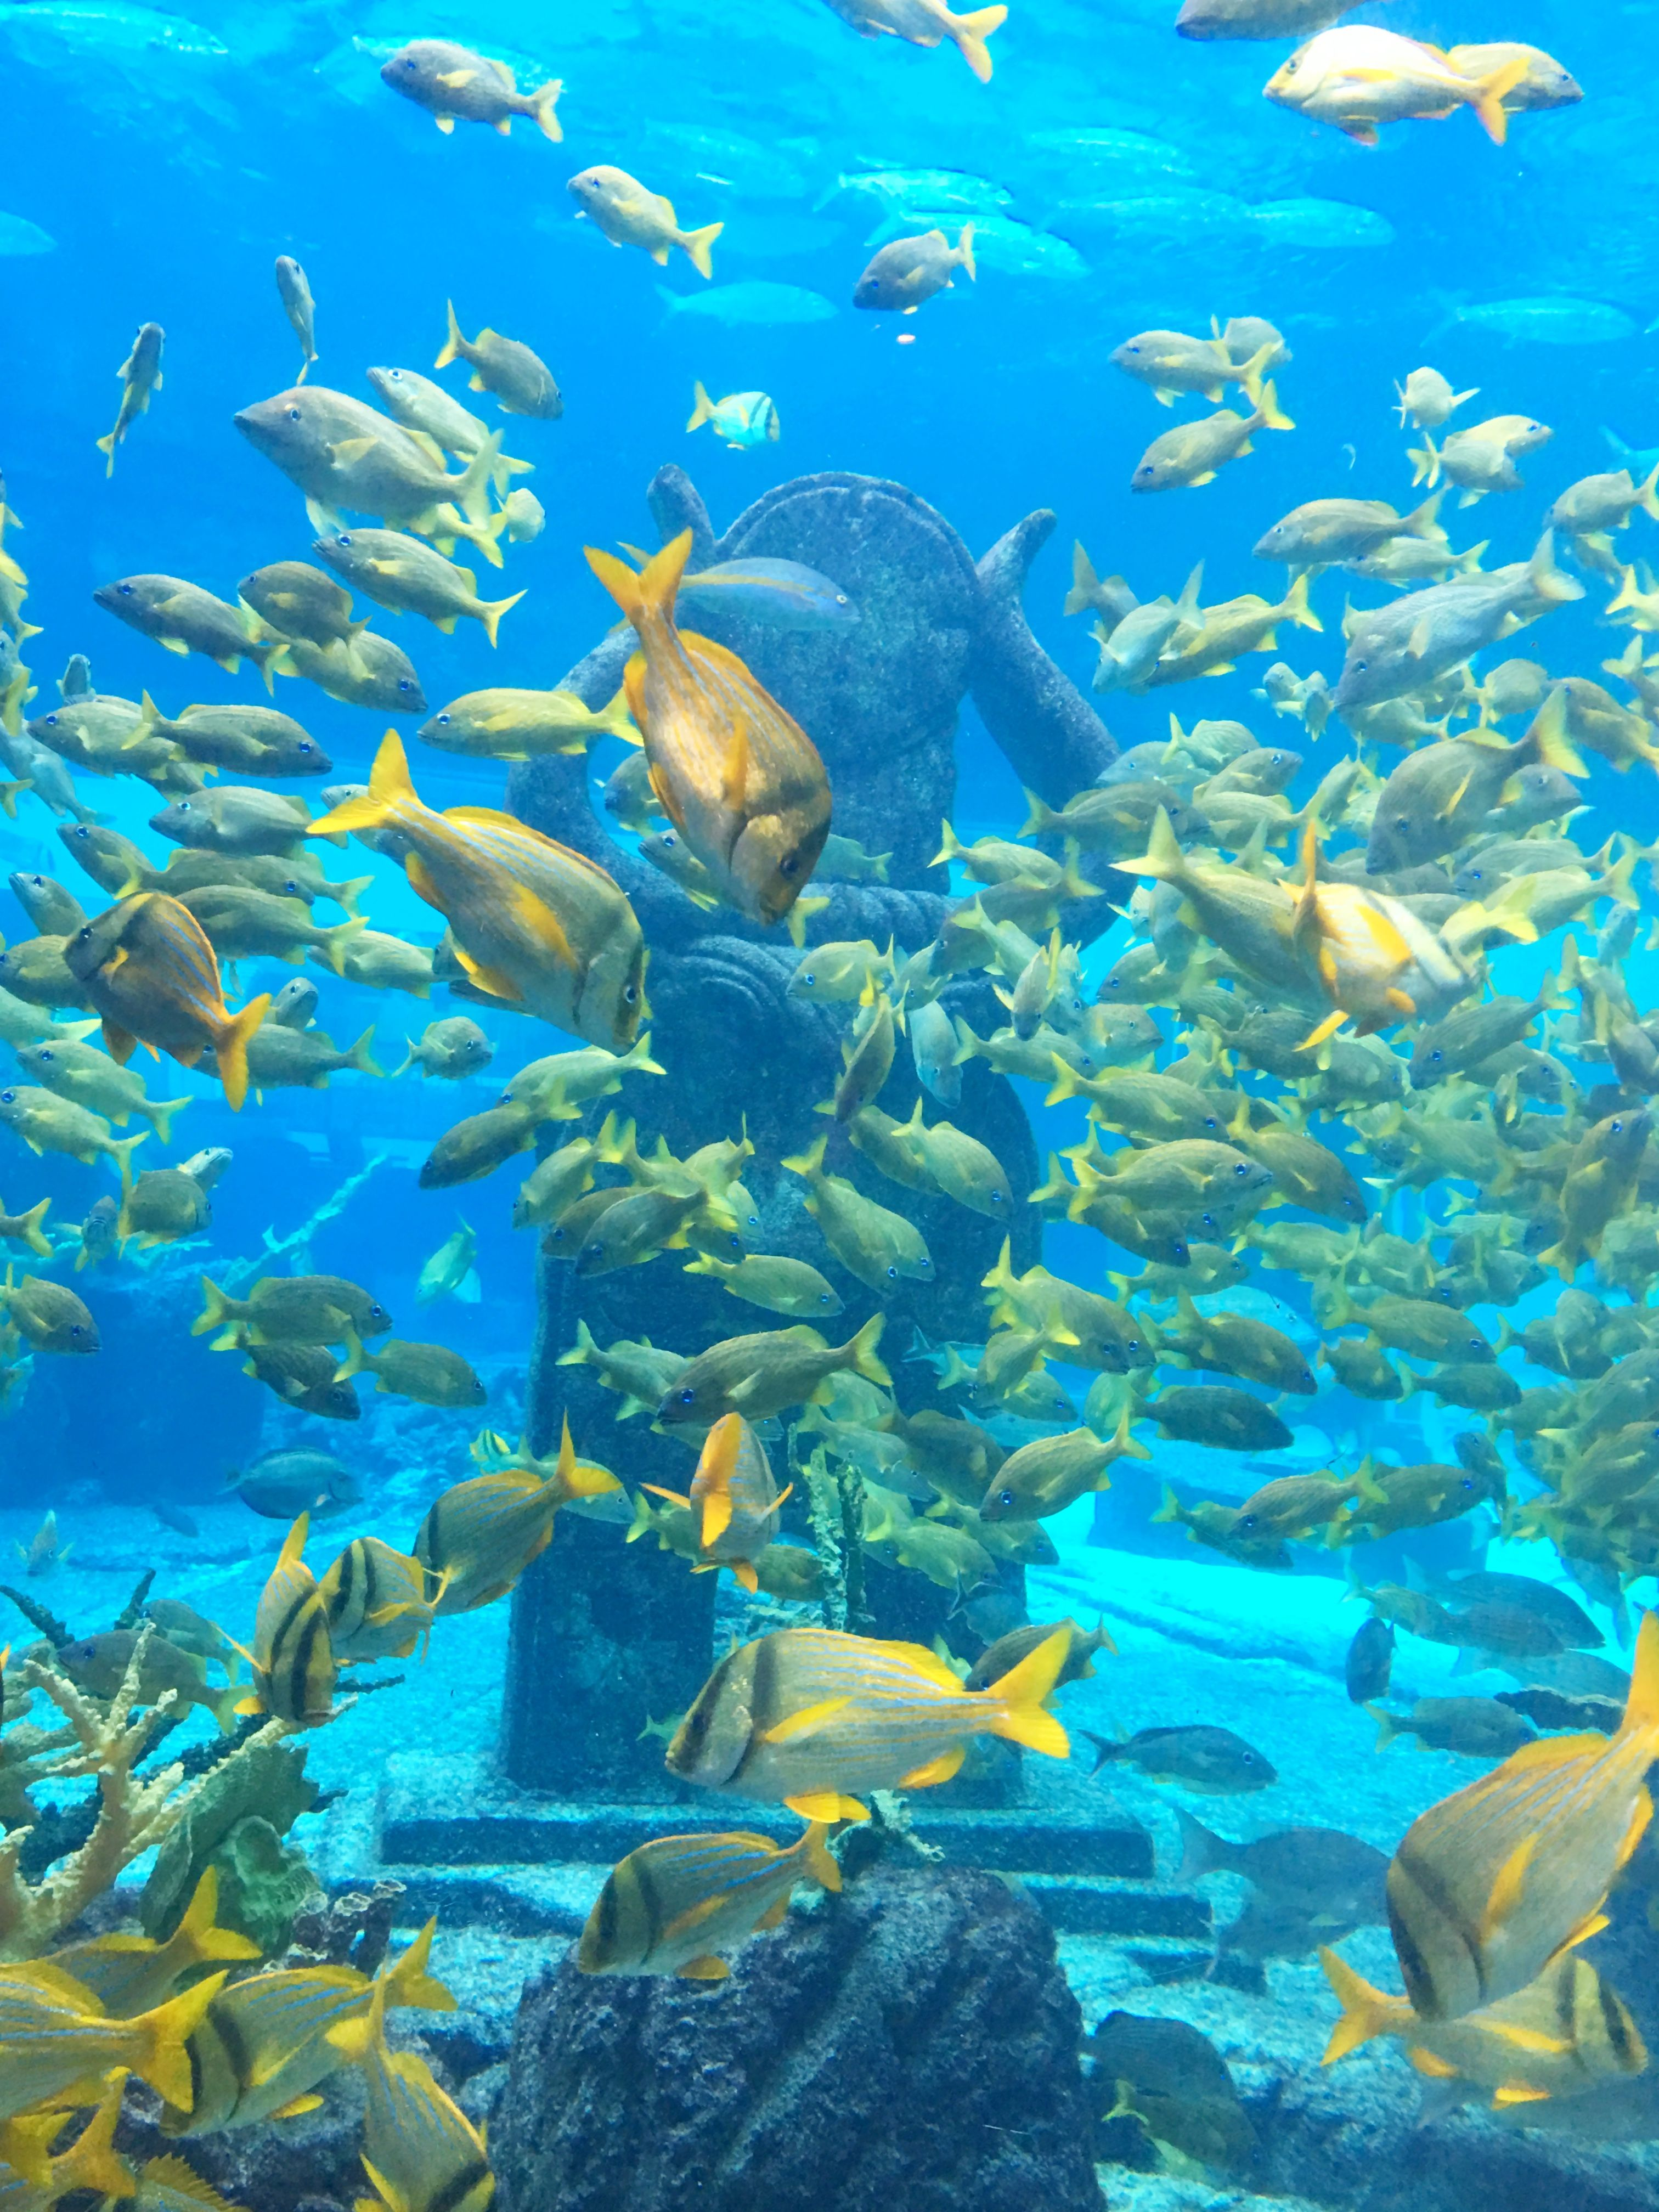 Explore The Dig at #AtlantisResort - the world's largest open air marine habitat!